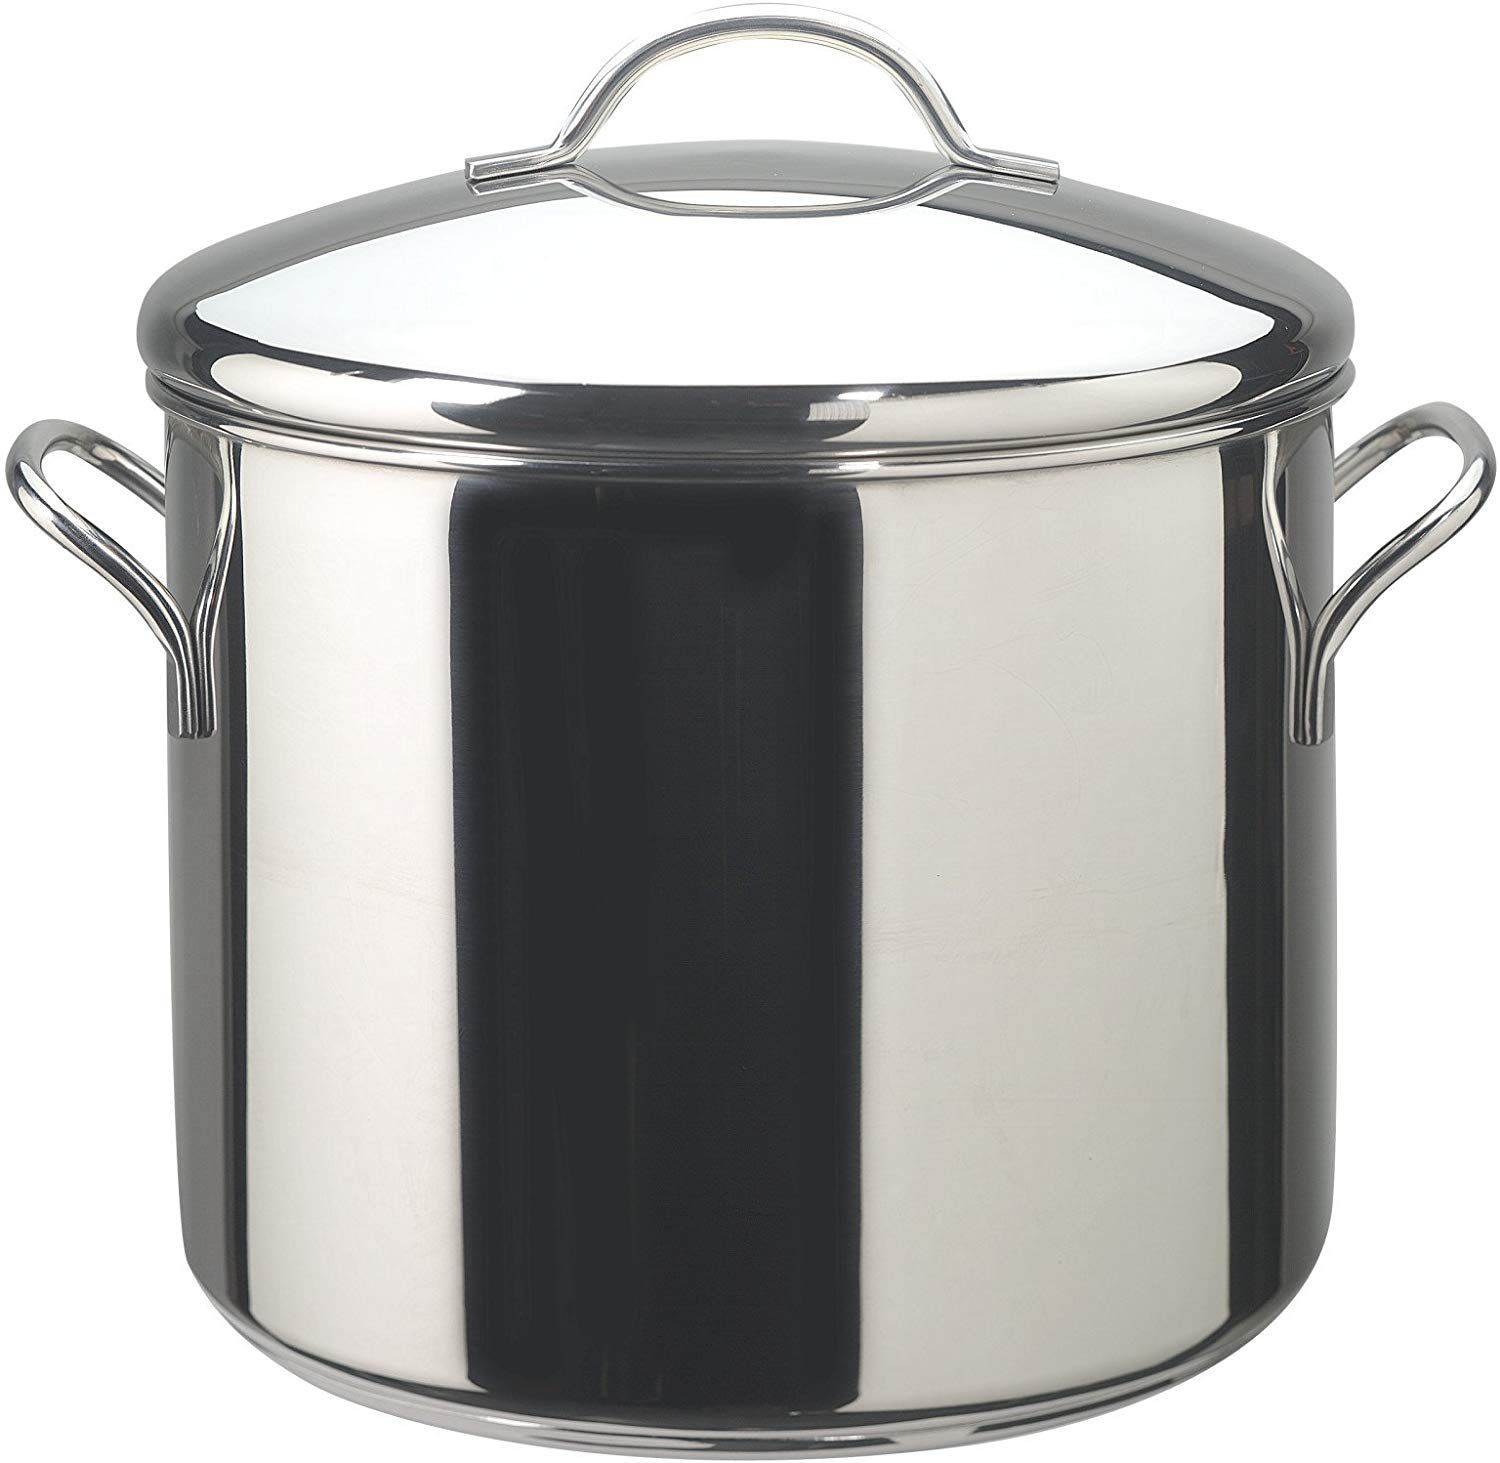 Farberware Classic Series Stainless Steel 12-Quart Stockpot